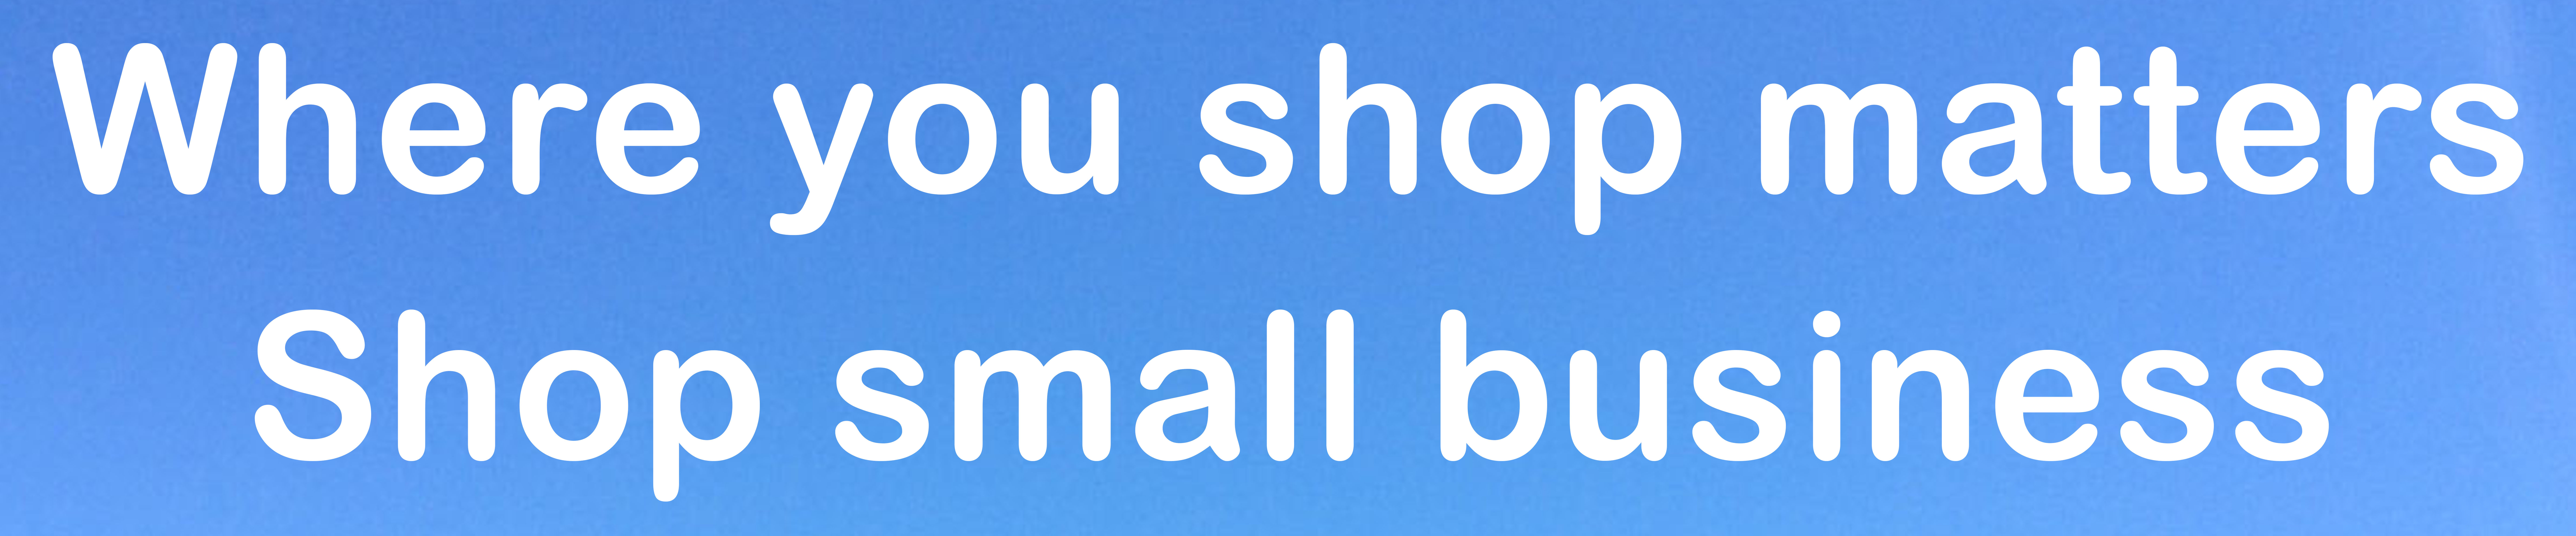 where you shop matters shop small business